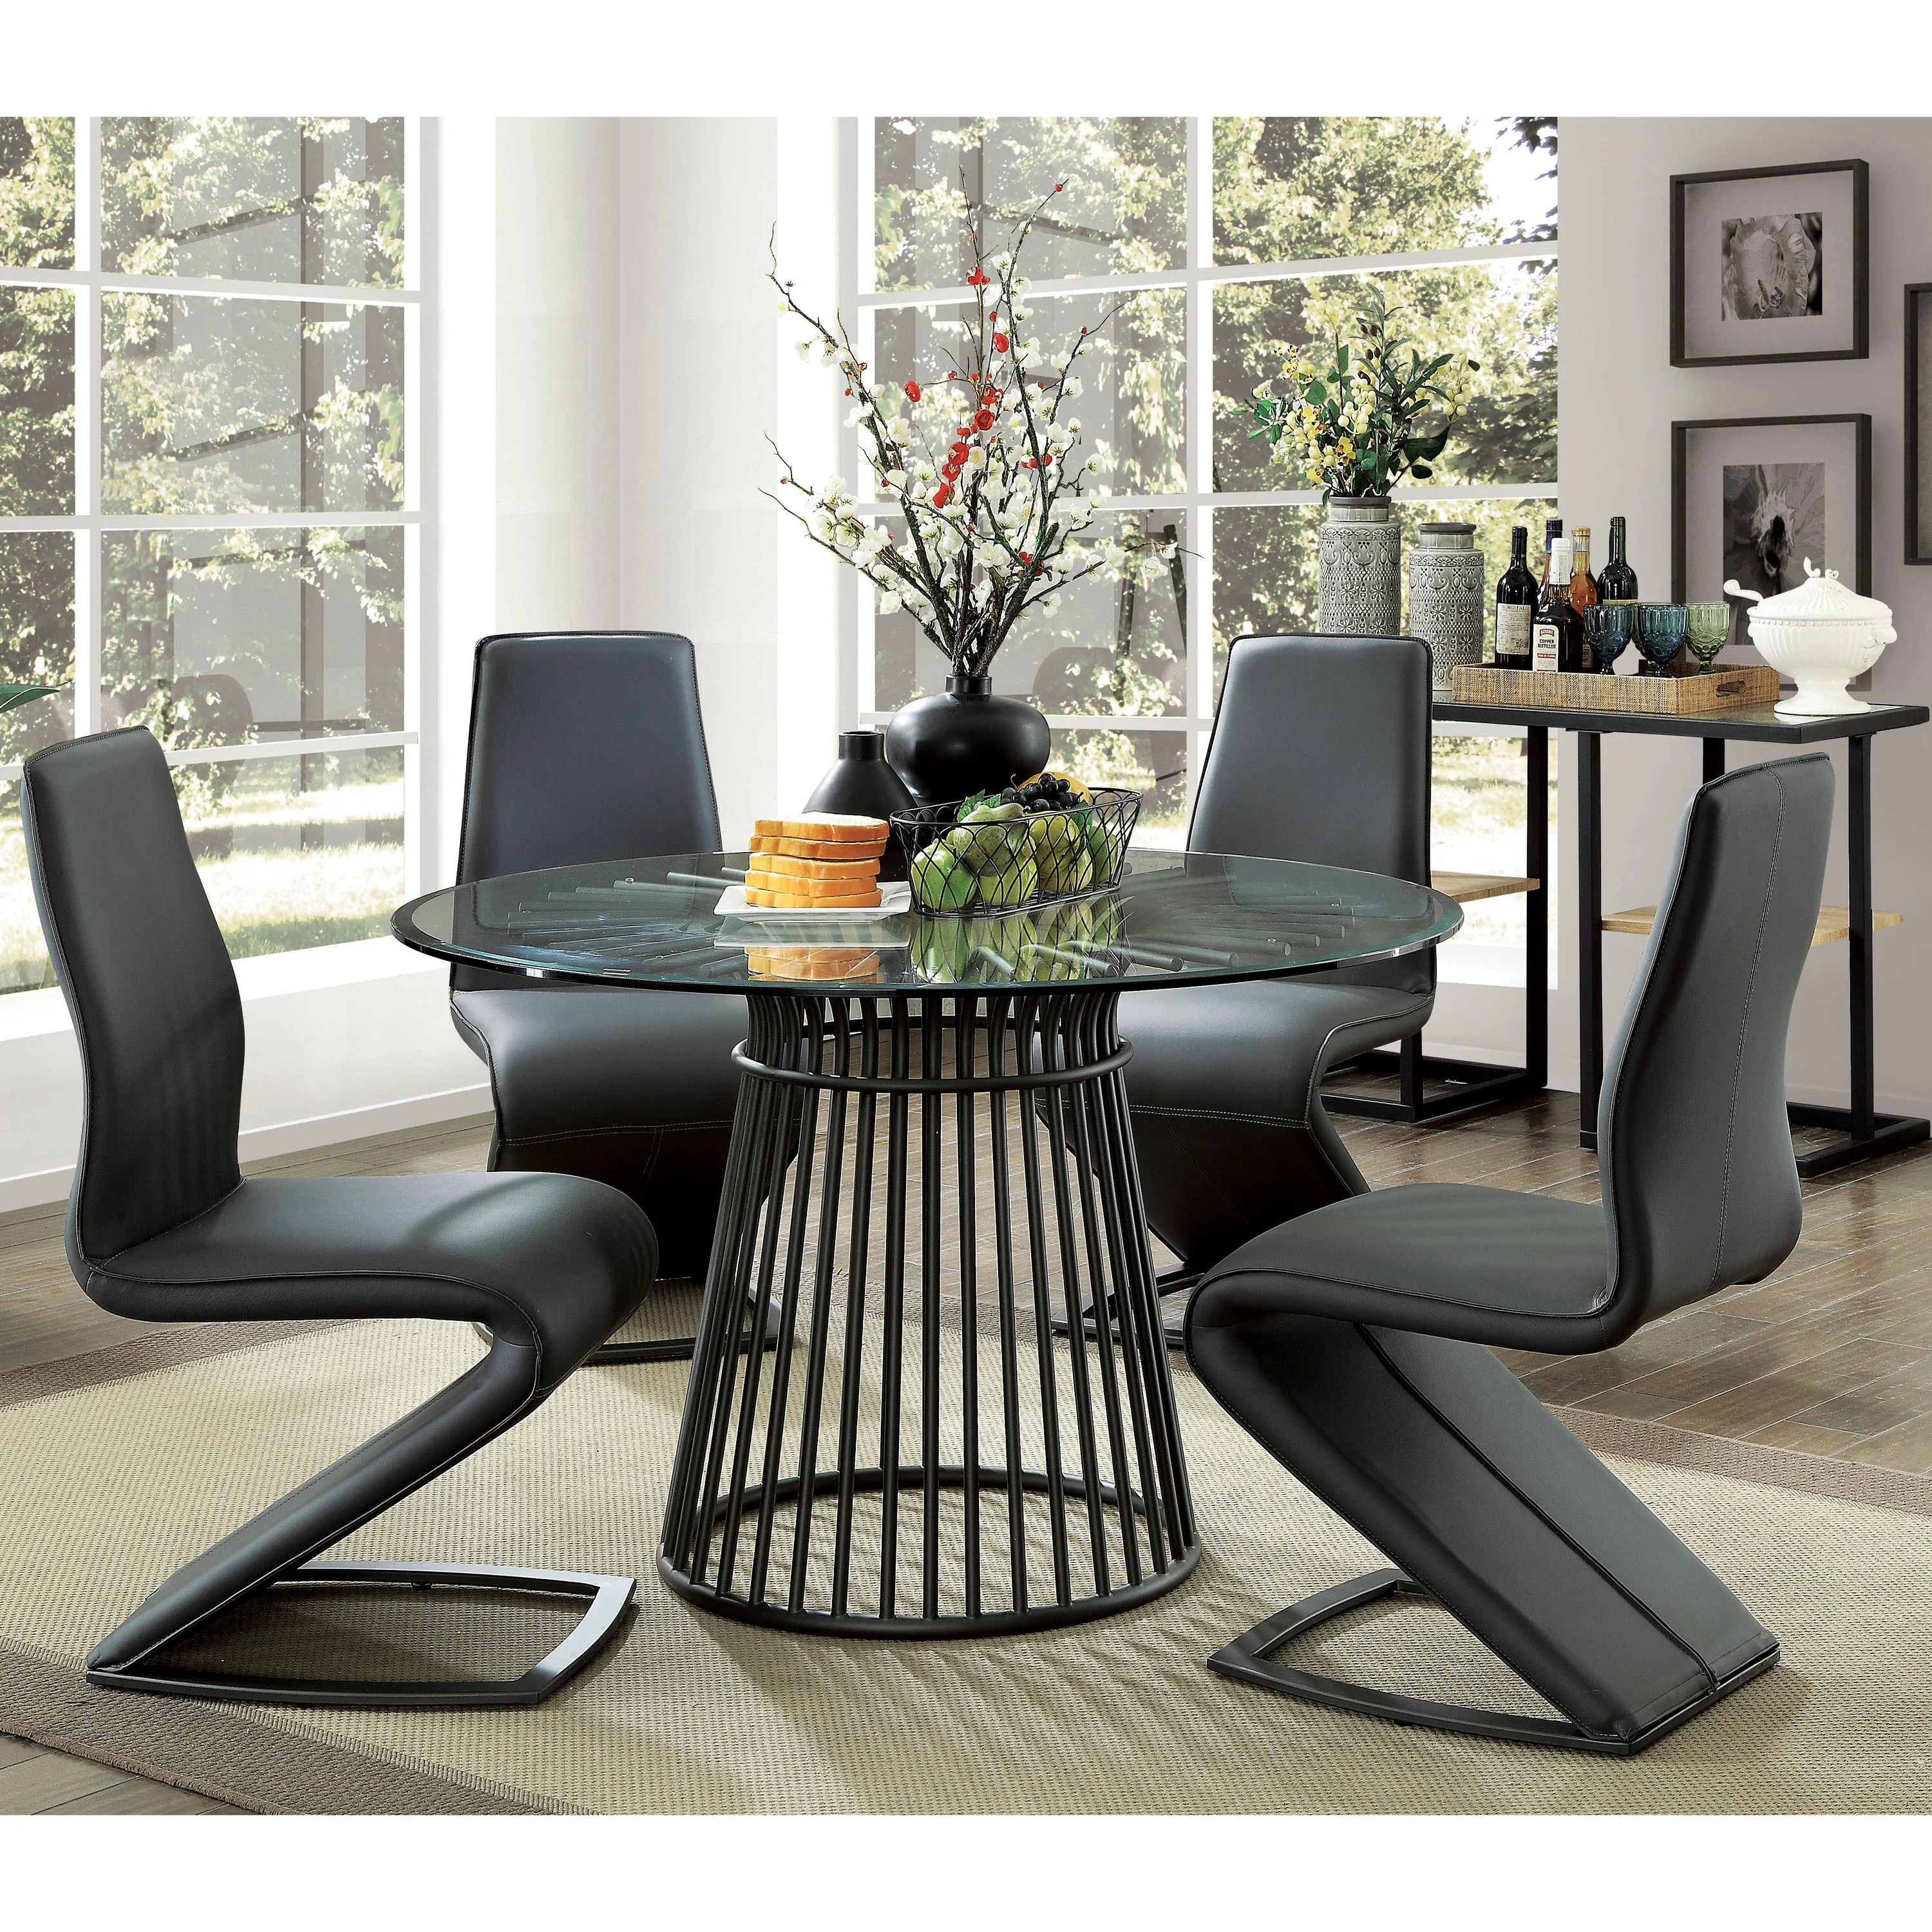 Round Glass Top Dining Table Details About Furniture Of America Byron Modern Round 48 Inch Glass Top Dining Table Black